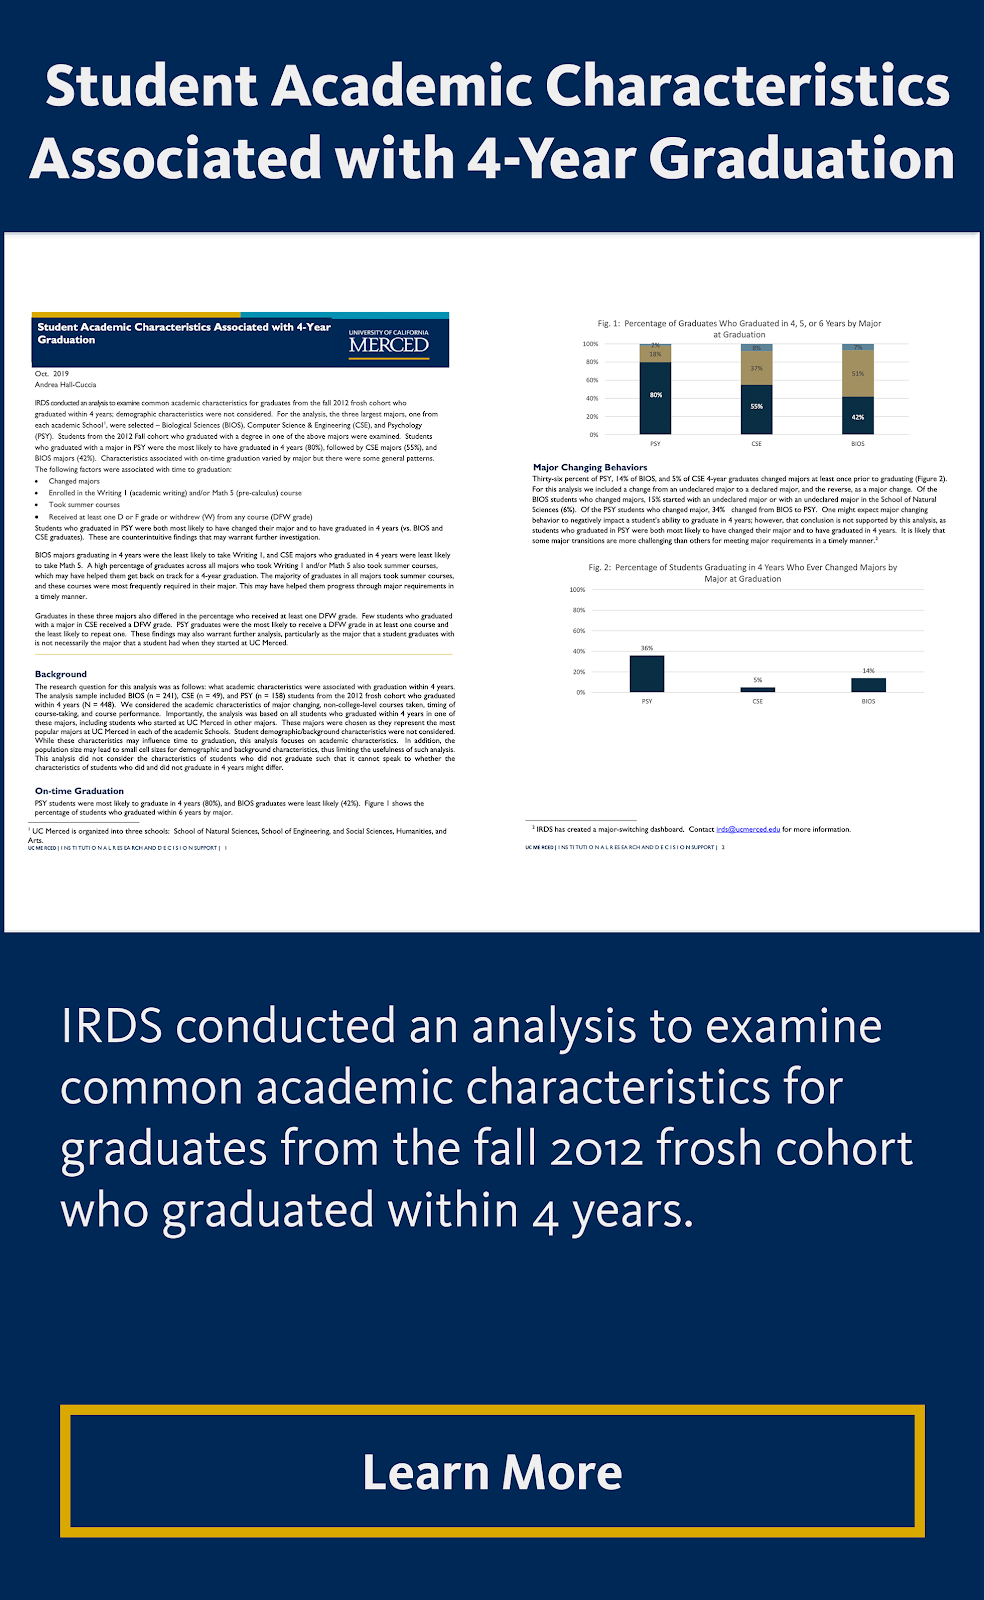 Student Academic Characteristics Associated with 4-Year Graduation